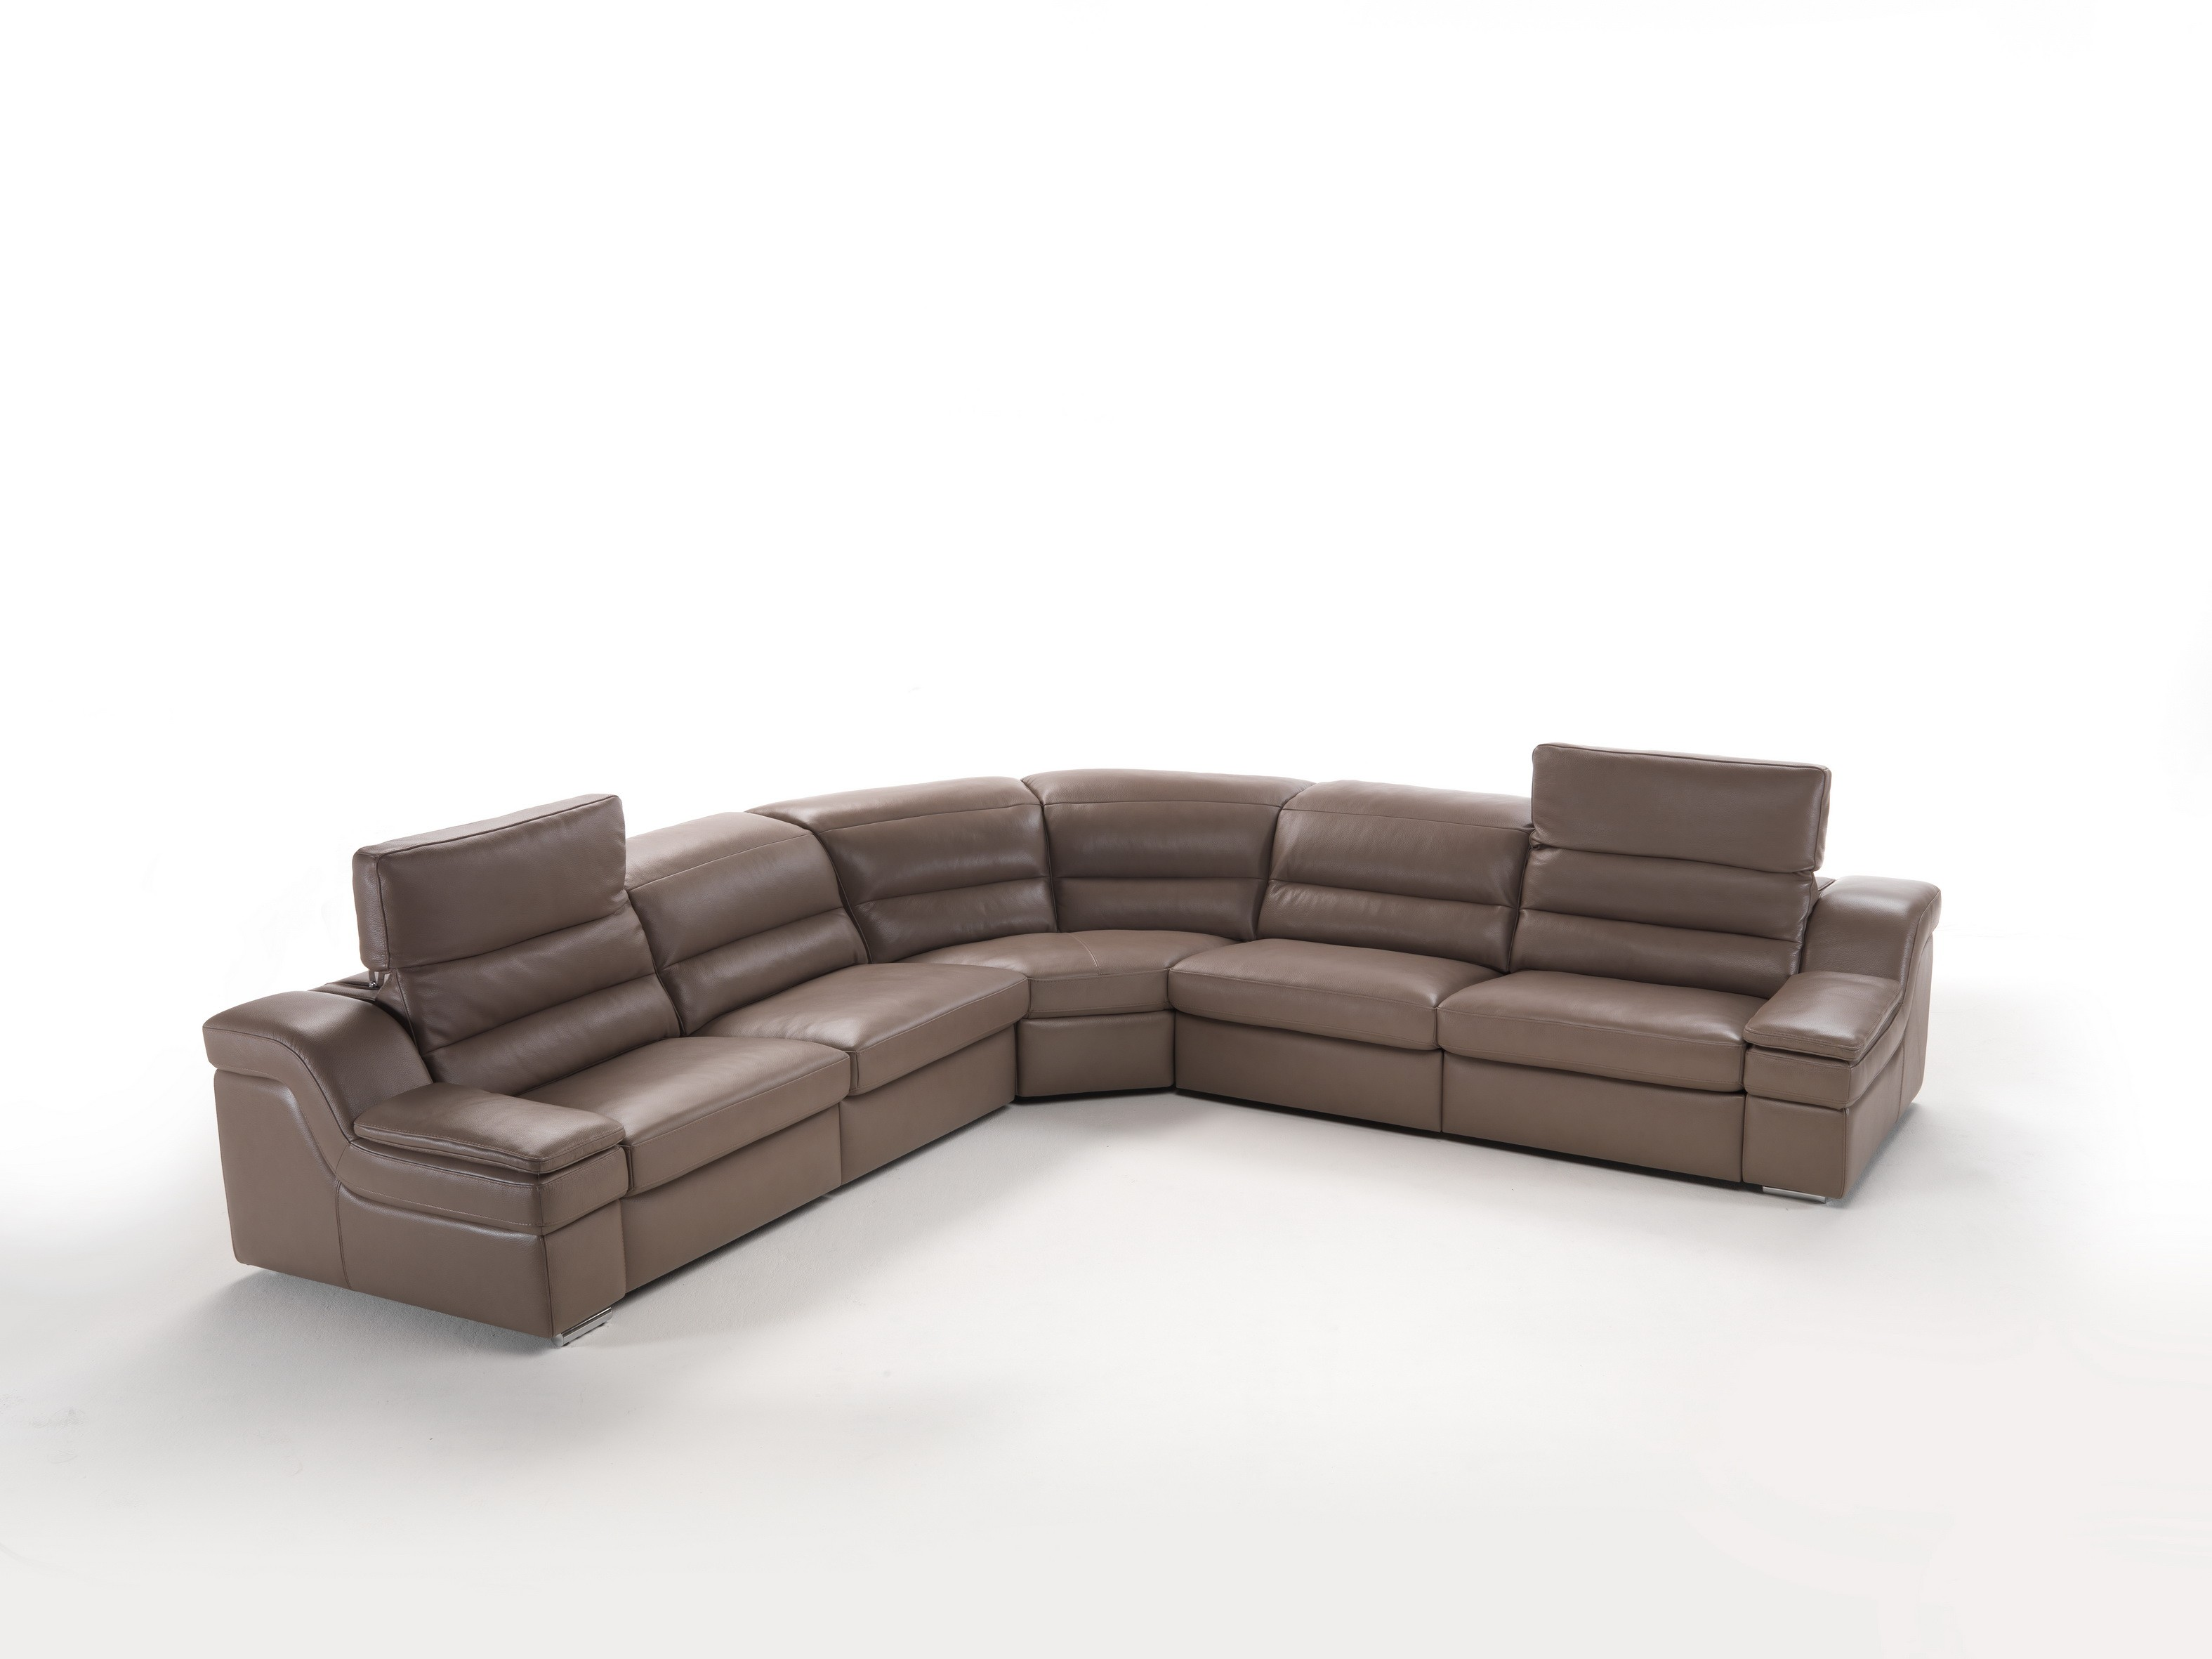 Erica premium leather sectional with power recliners by IDP Italia